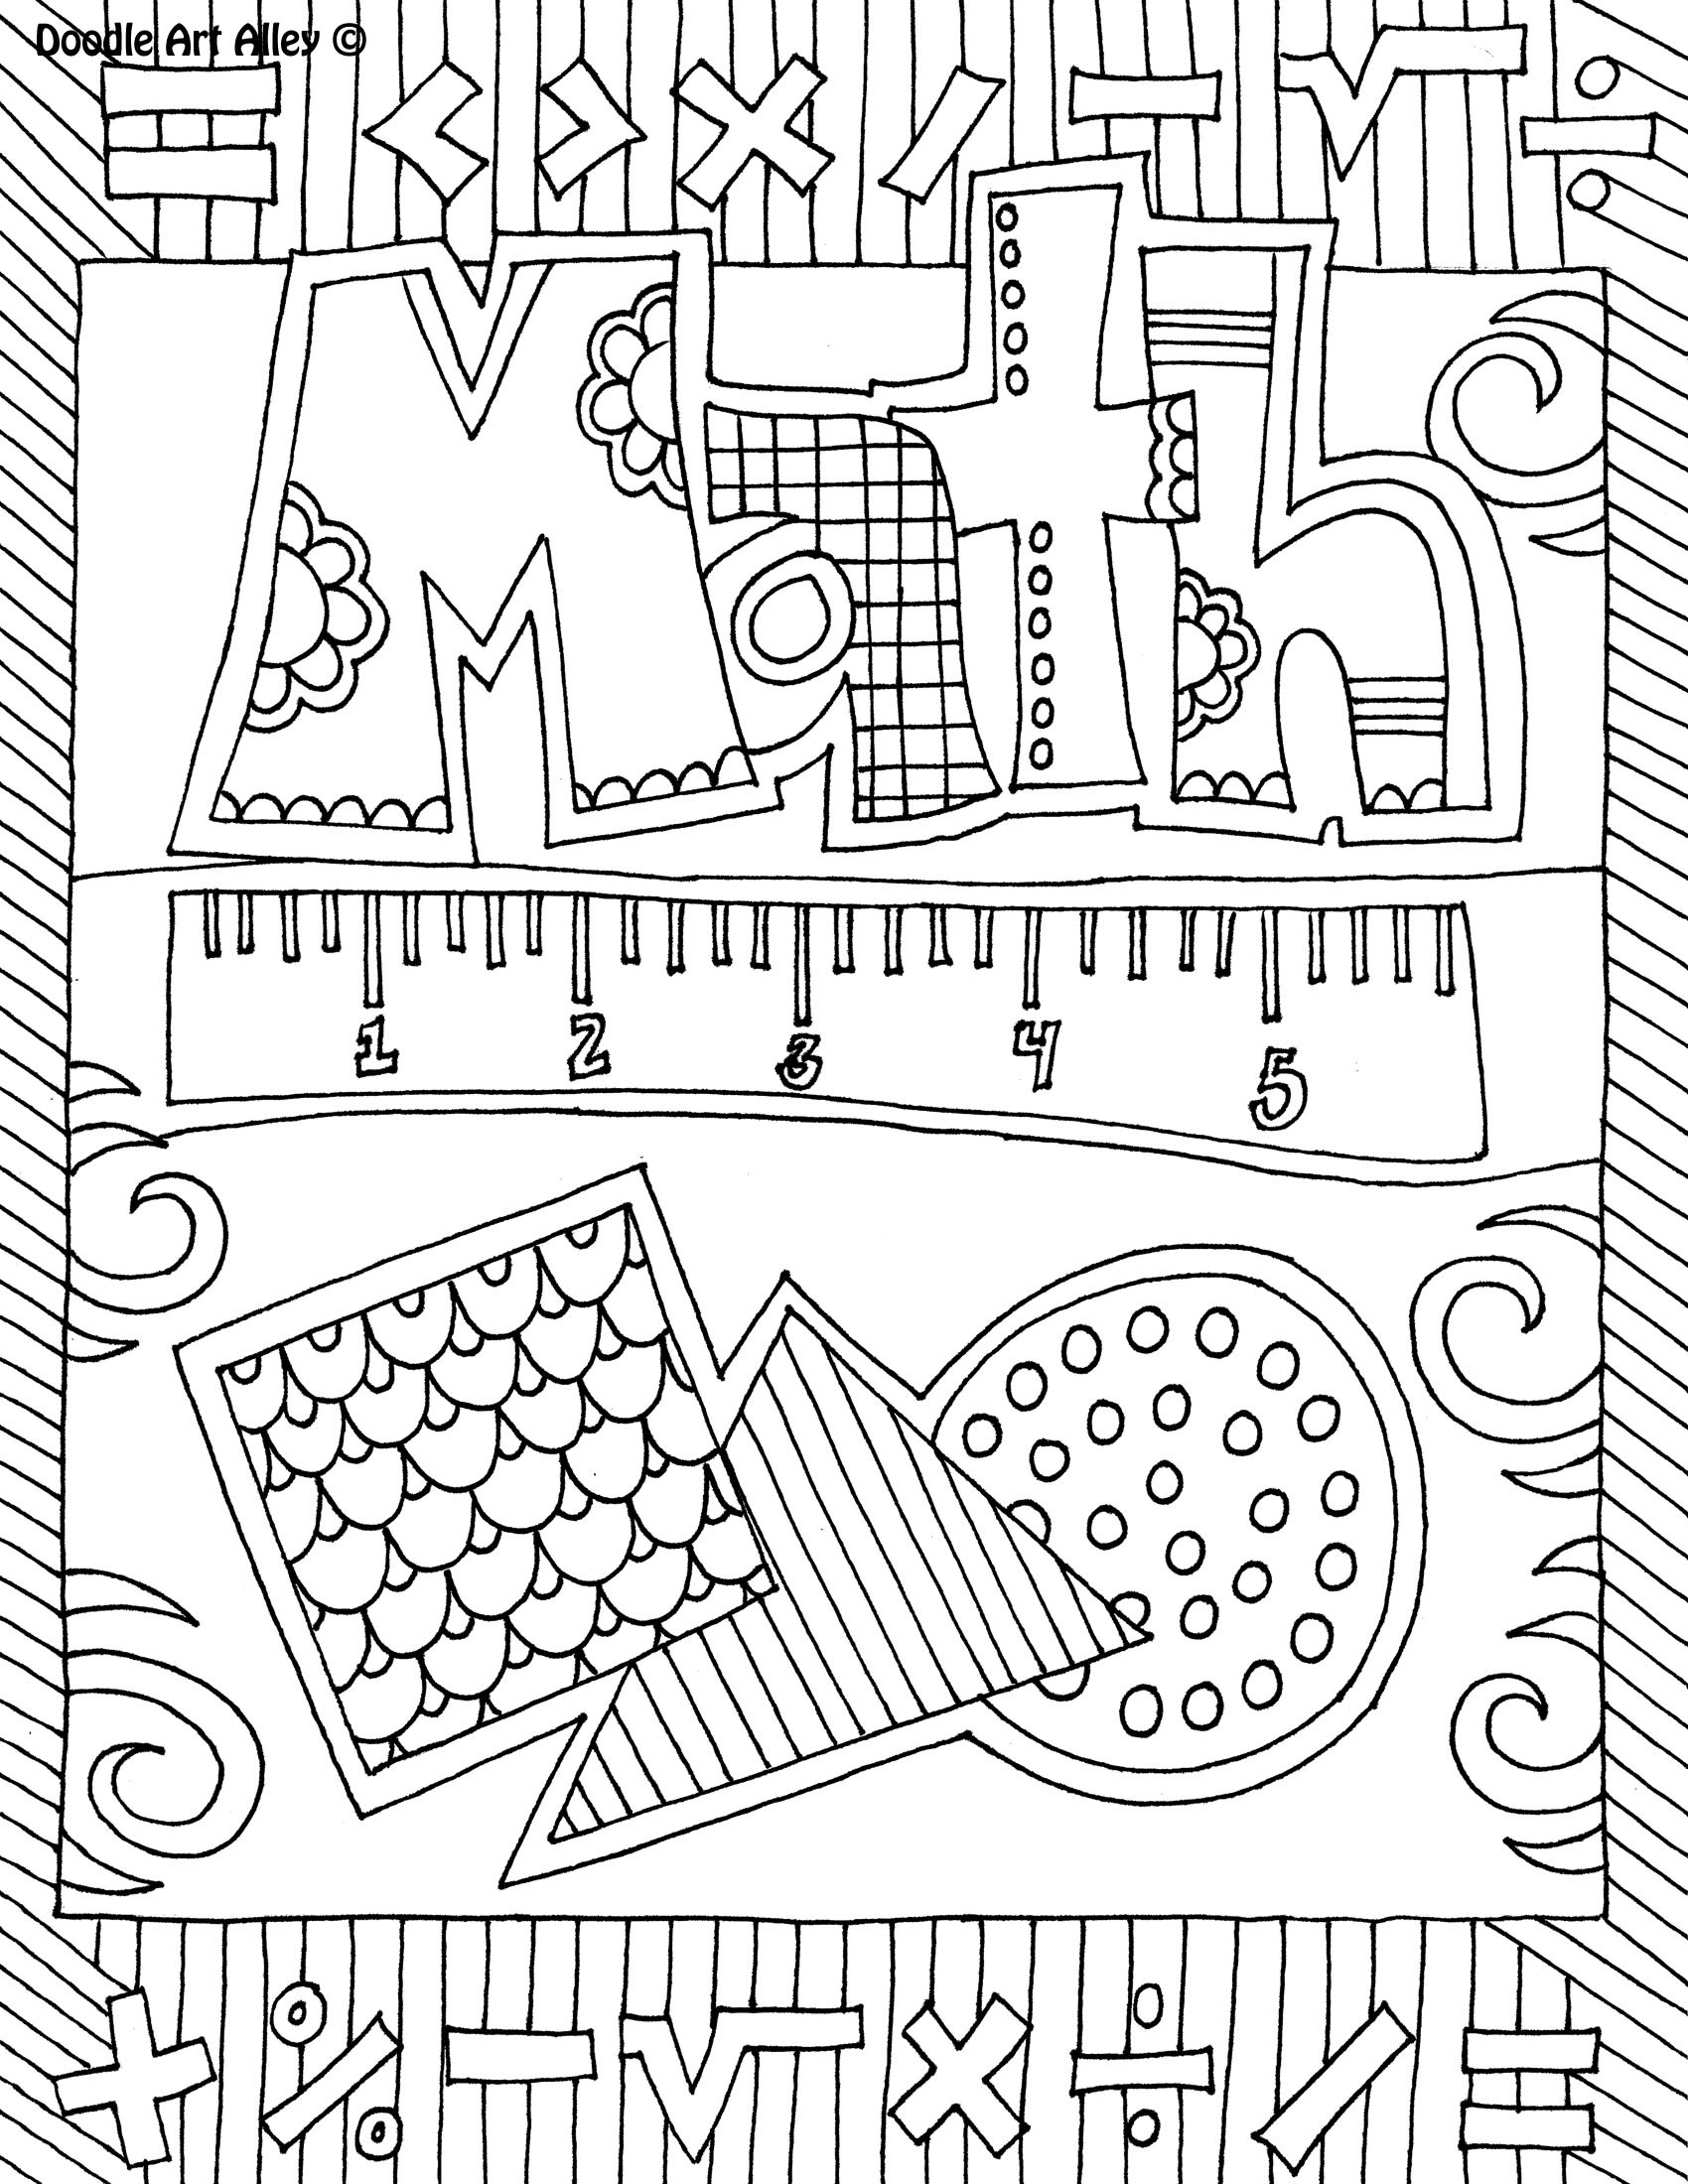 7 Images of Free Printable Notebook Cover Pages